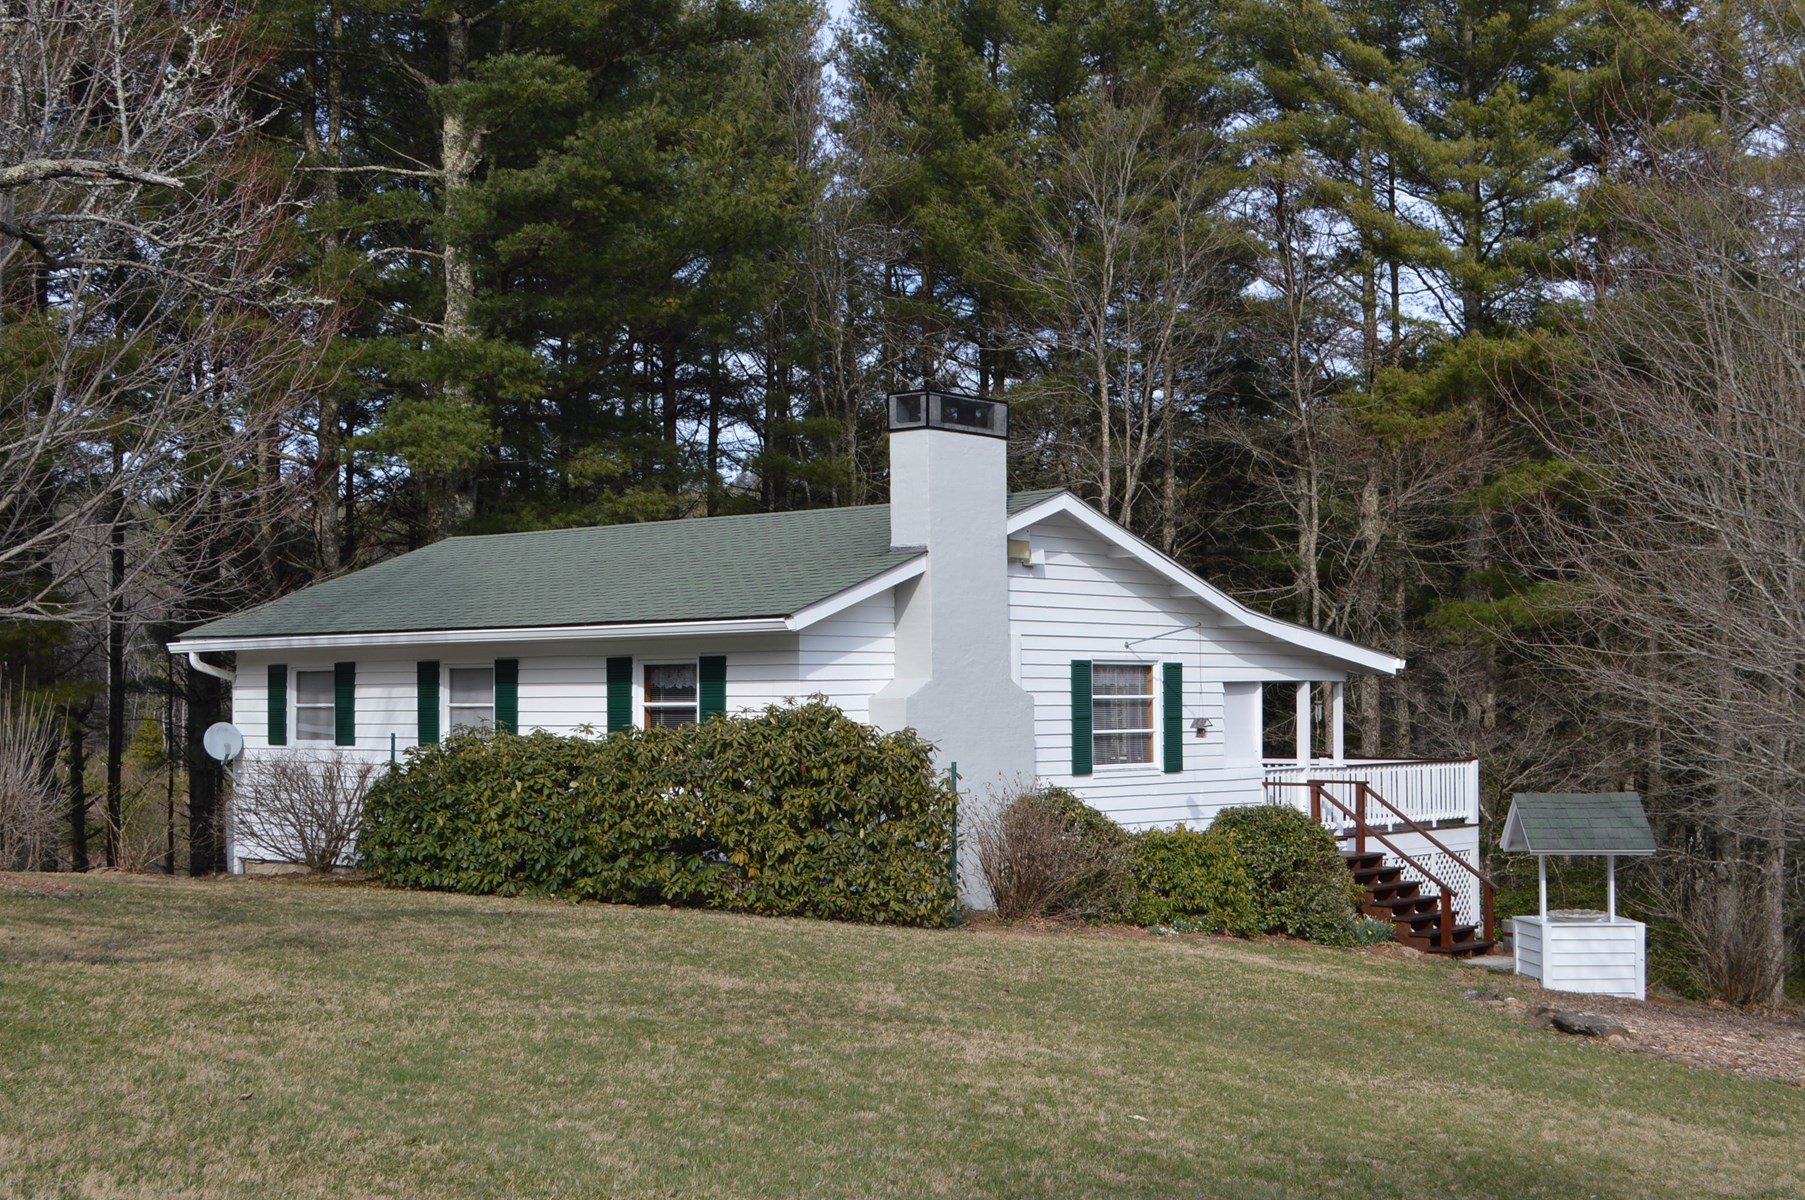 Quaint Home for Sale on 19.18 Acres +/- Large Pond